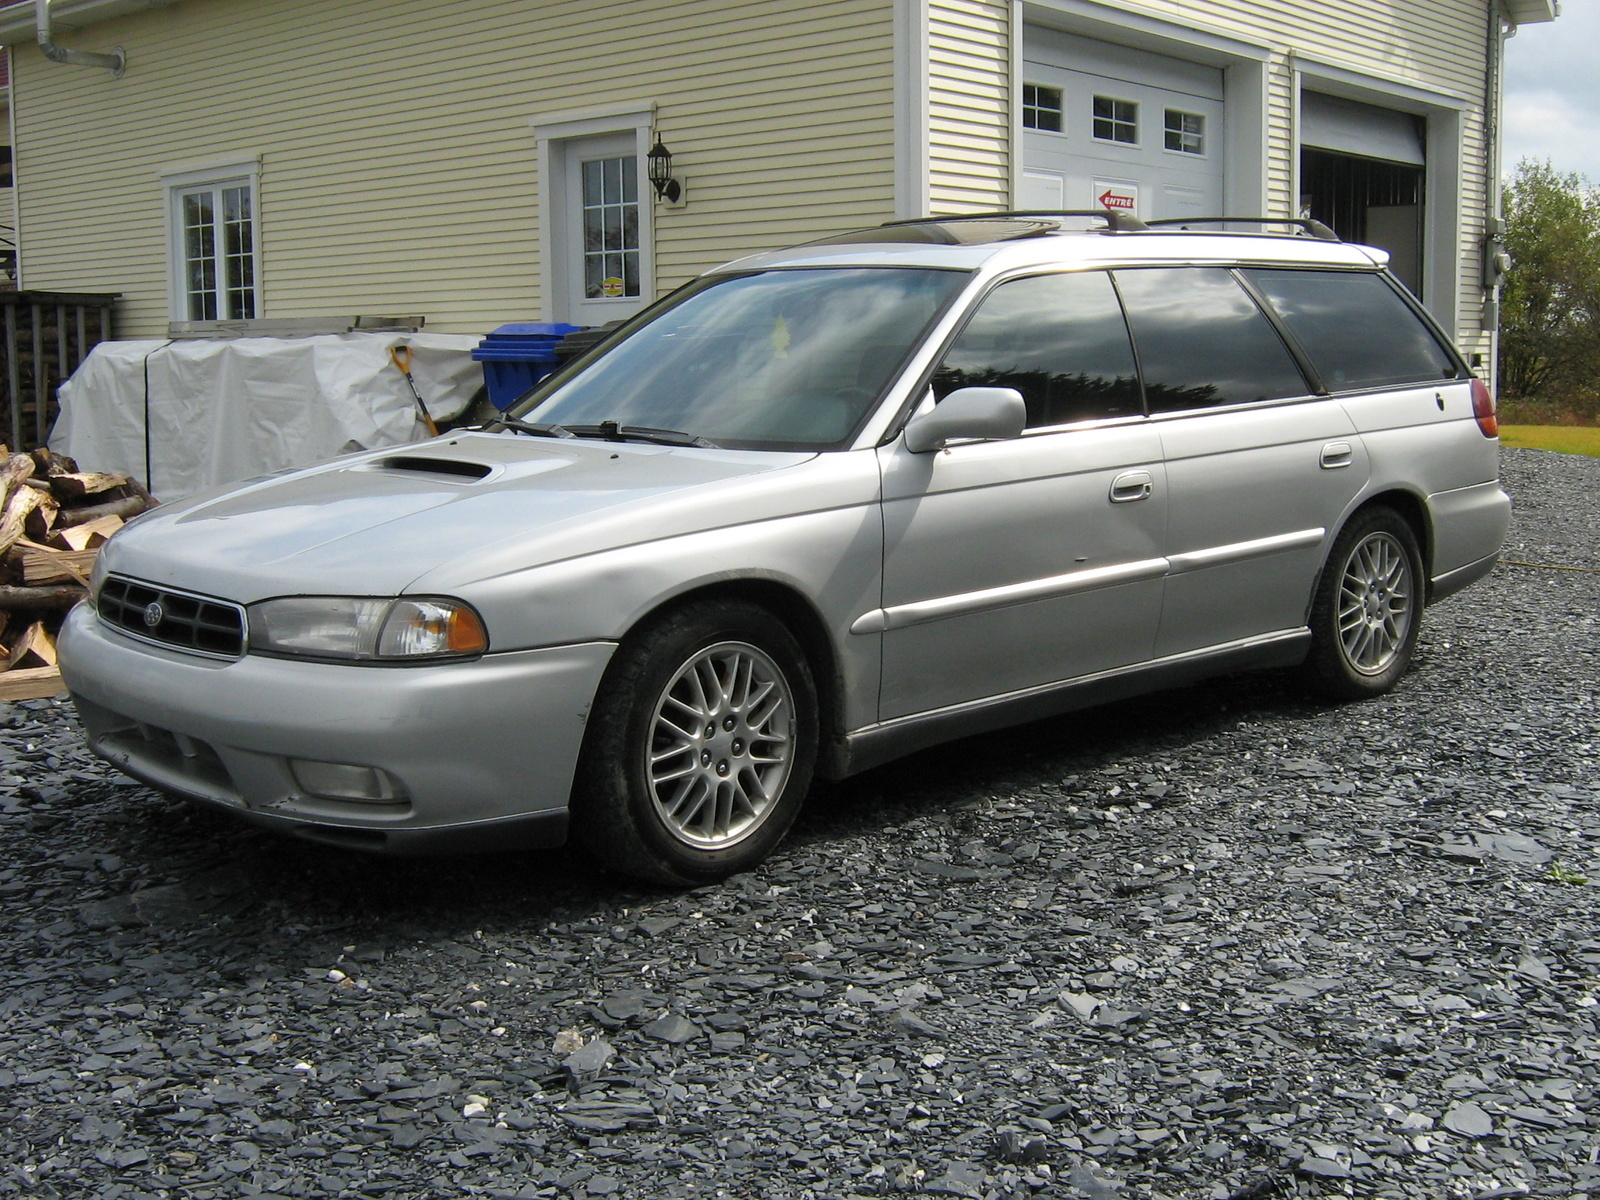 1998 Subaru Impreza Overview Cargurus Outback Dash Lights Cars Compared To